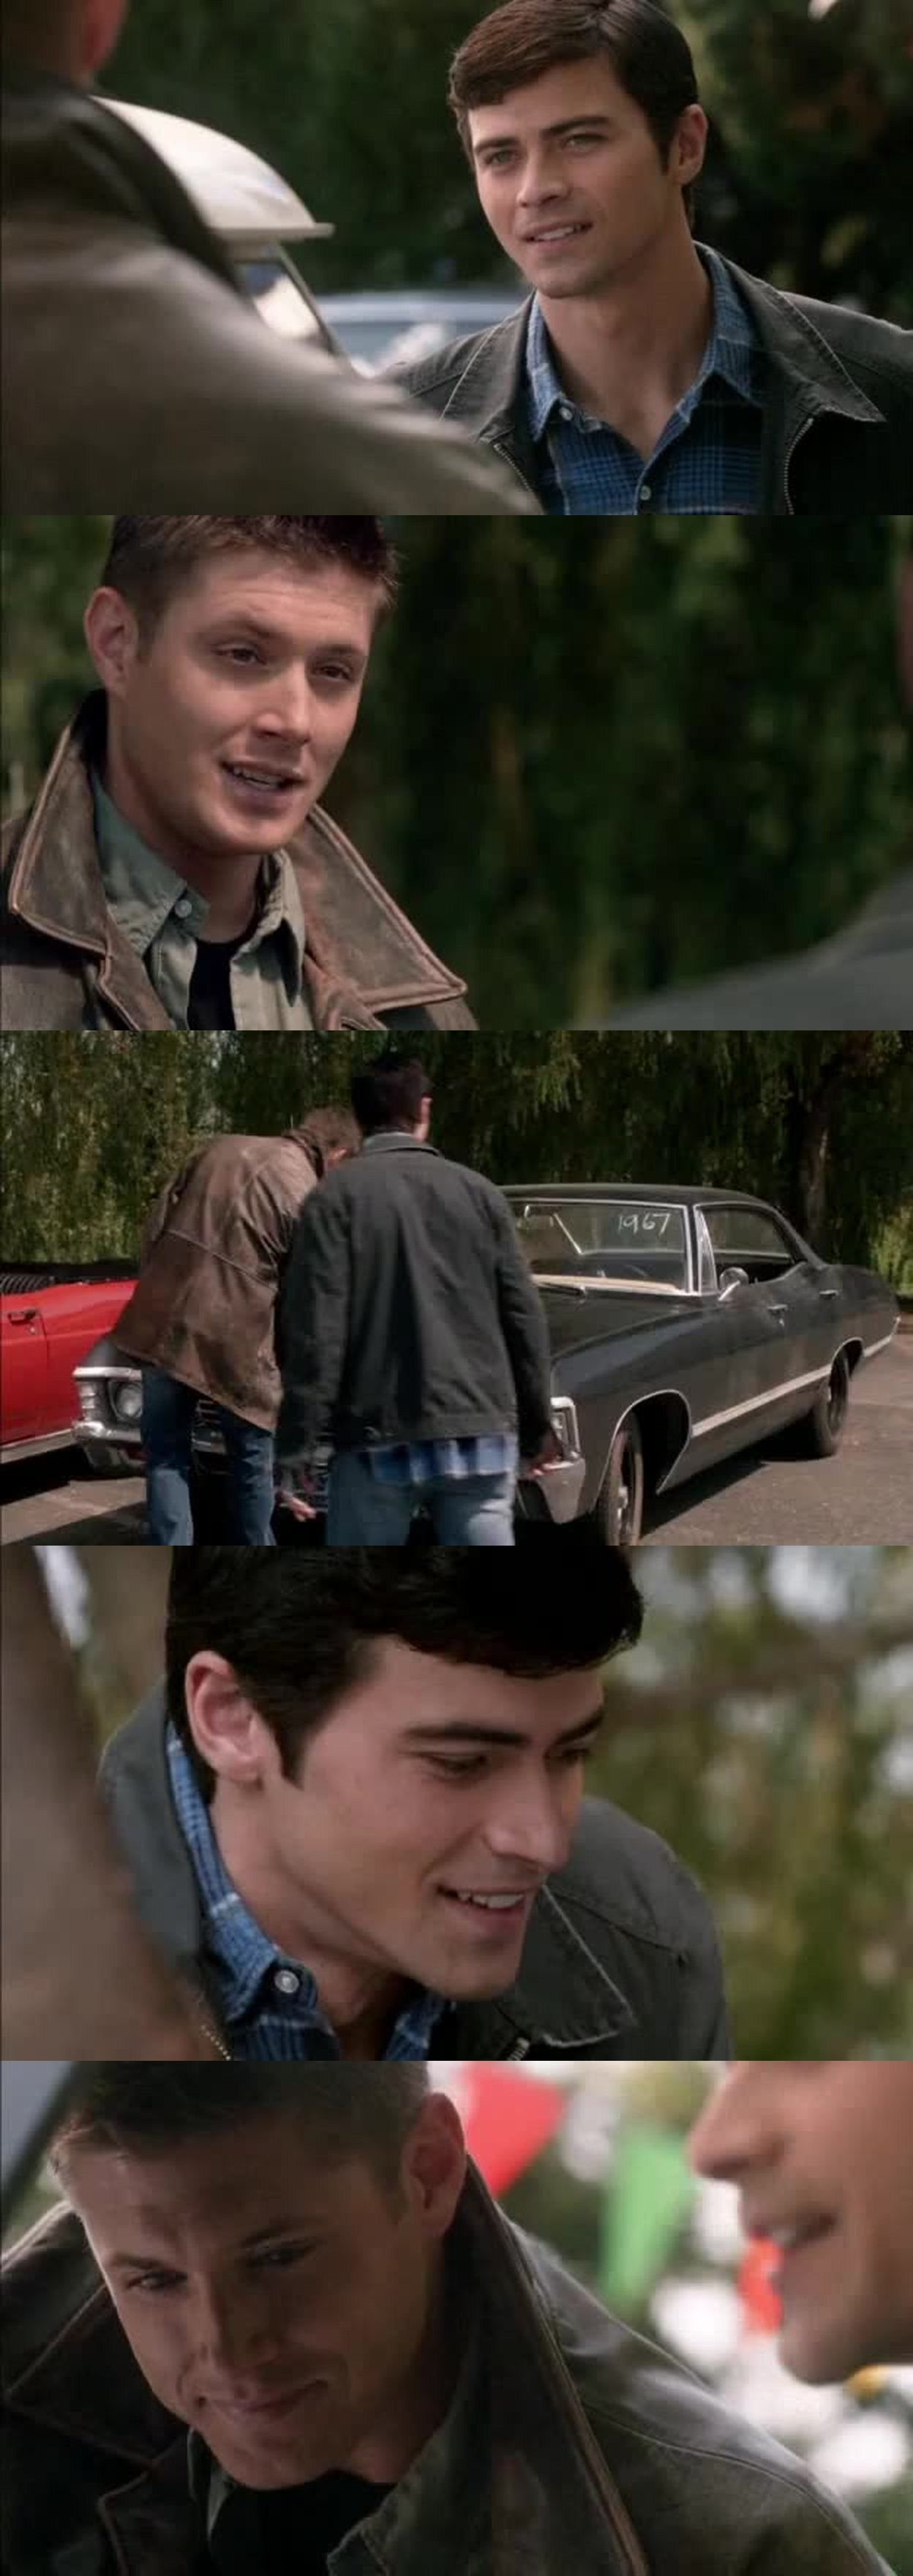 and now we know why John bought the Impala :D